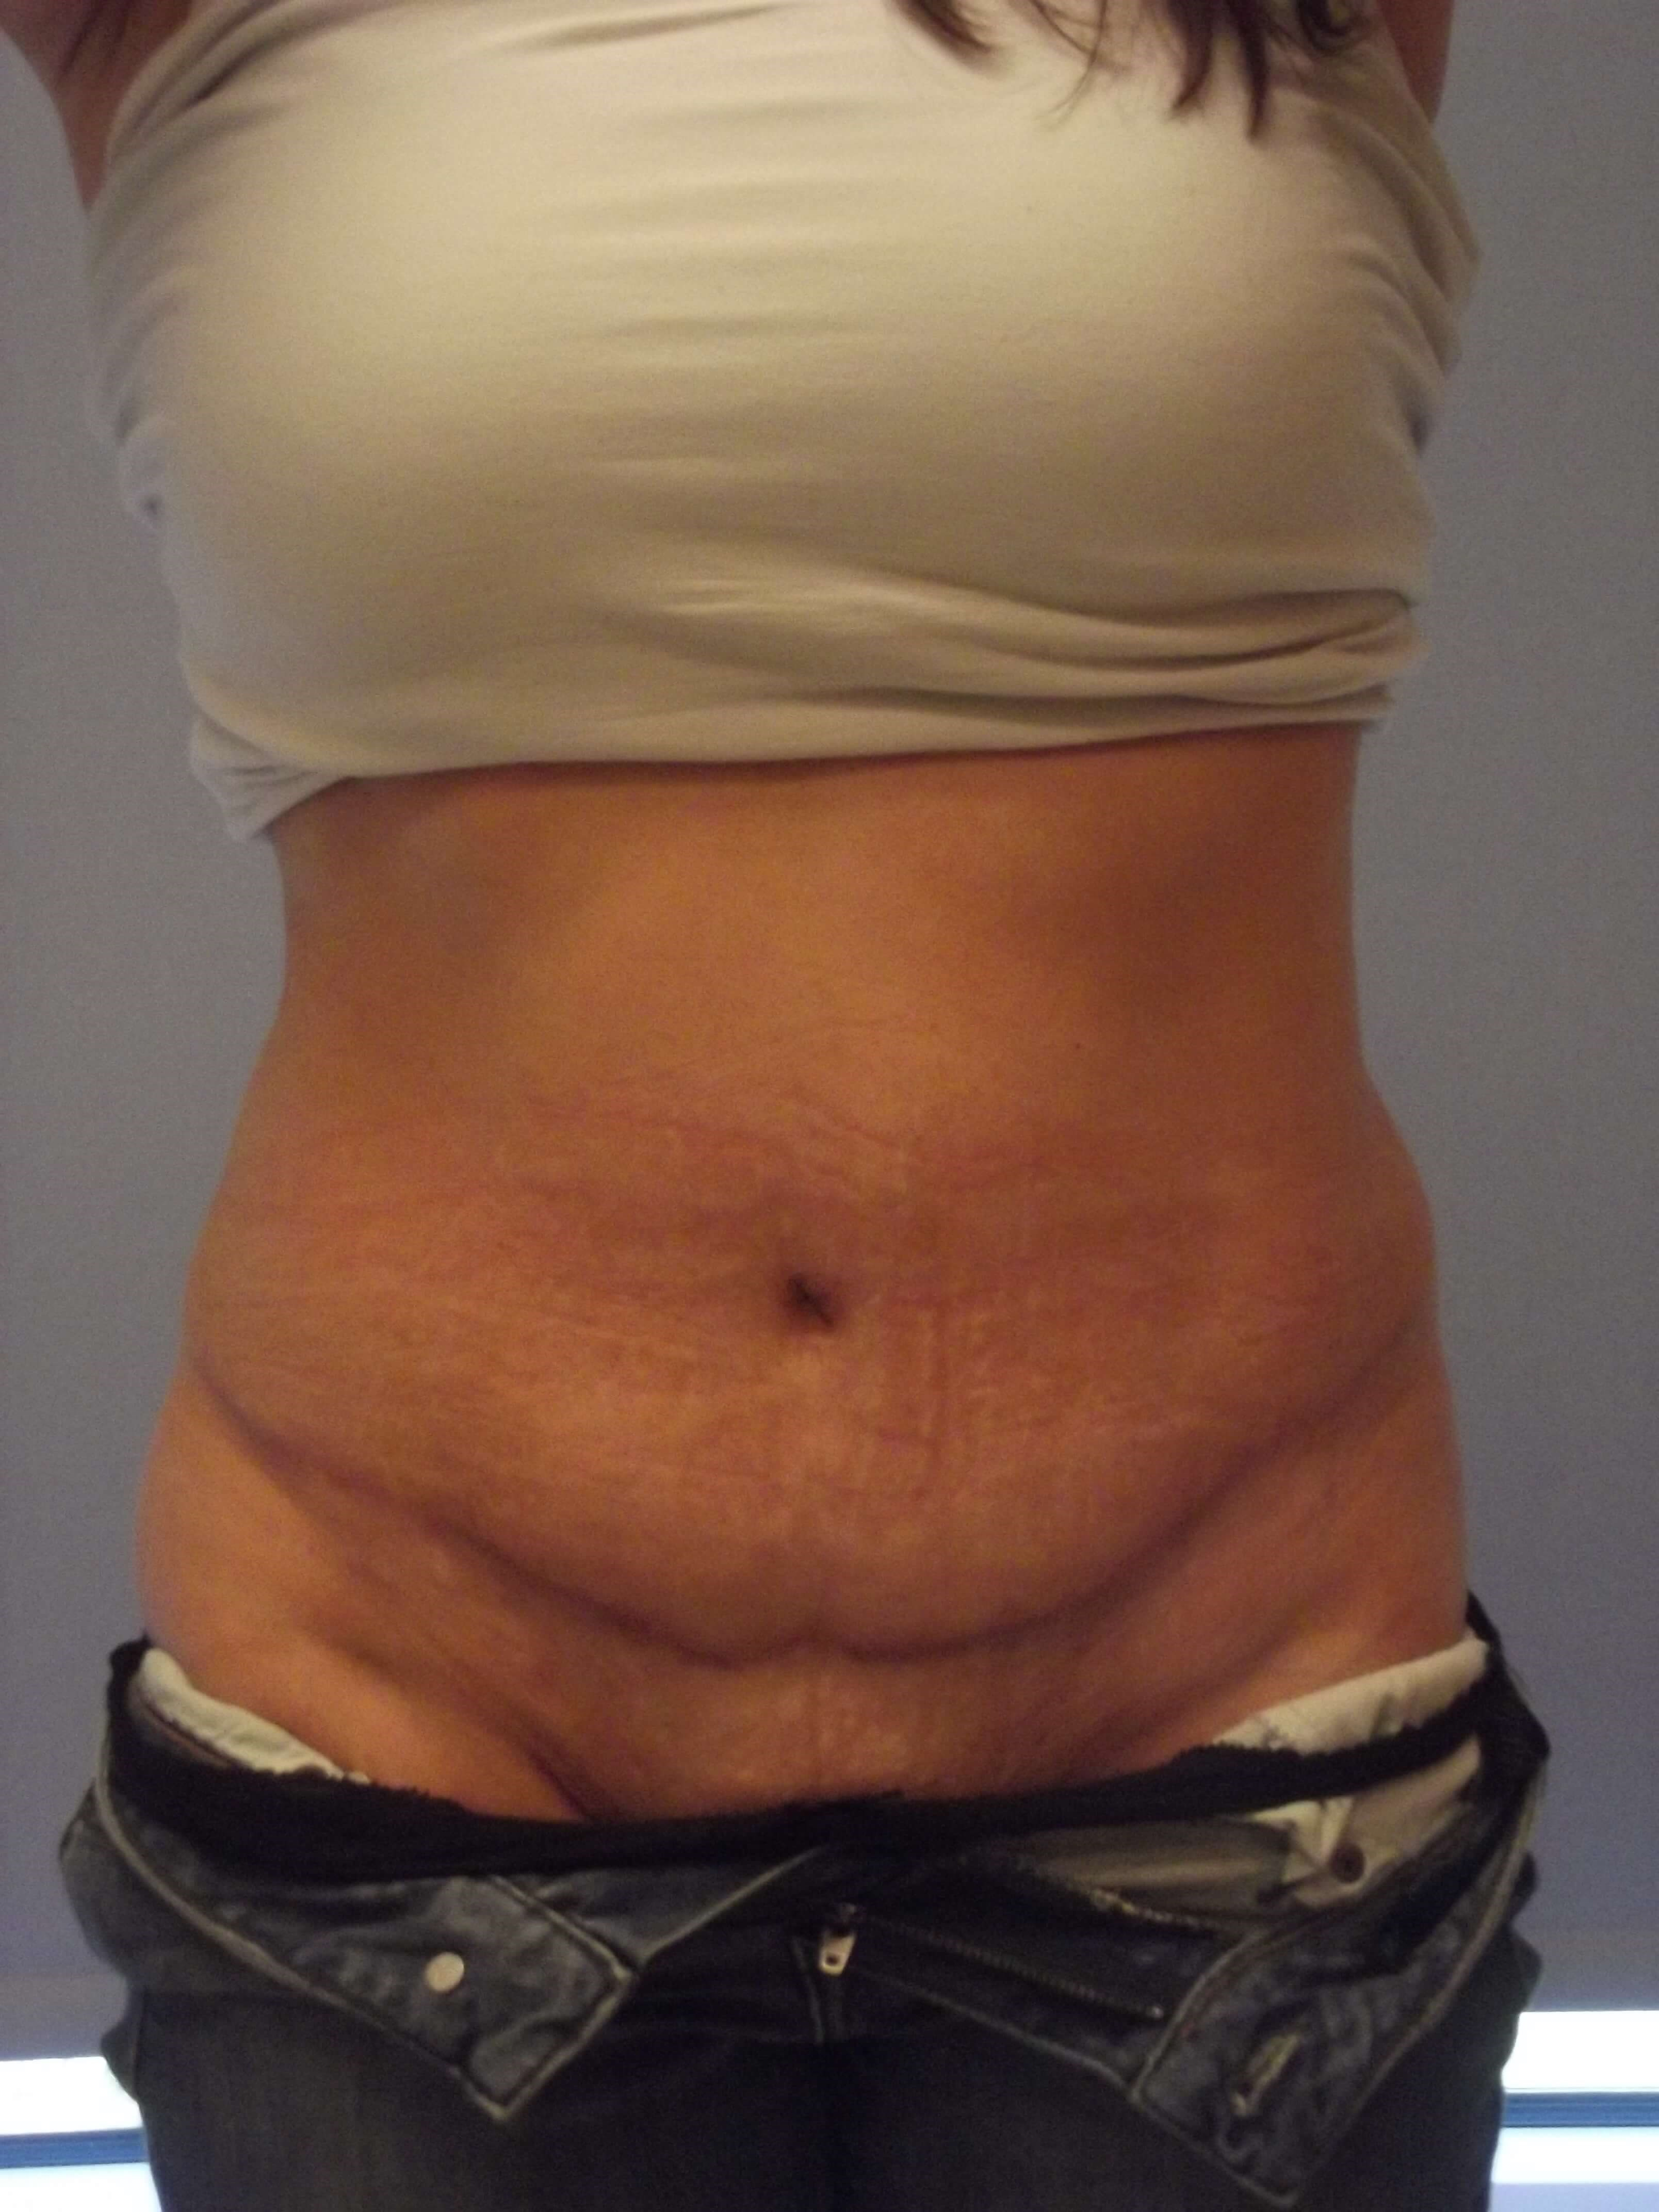 Dr. Suzman Abdominoplasty After